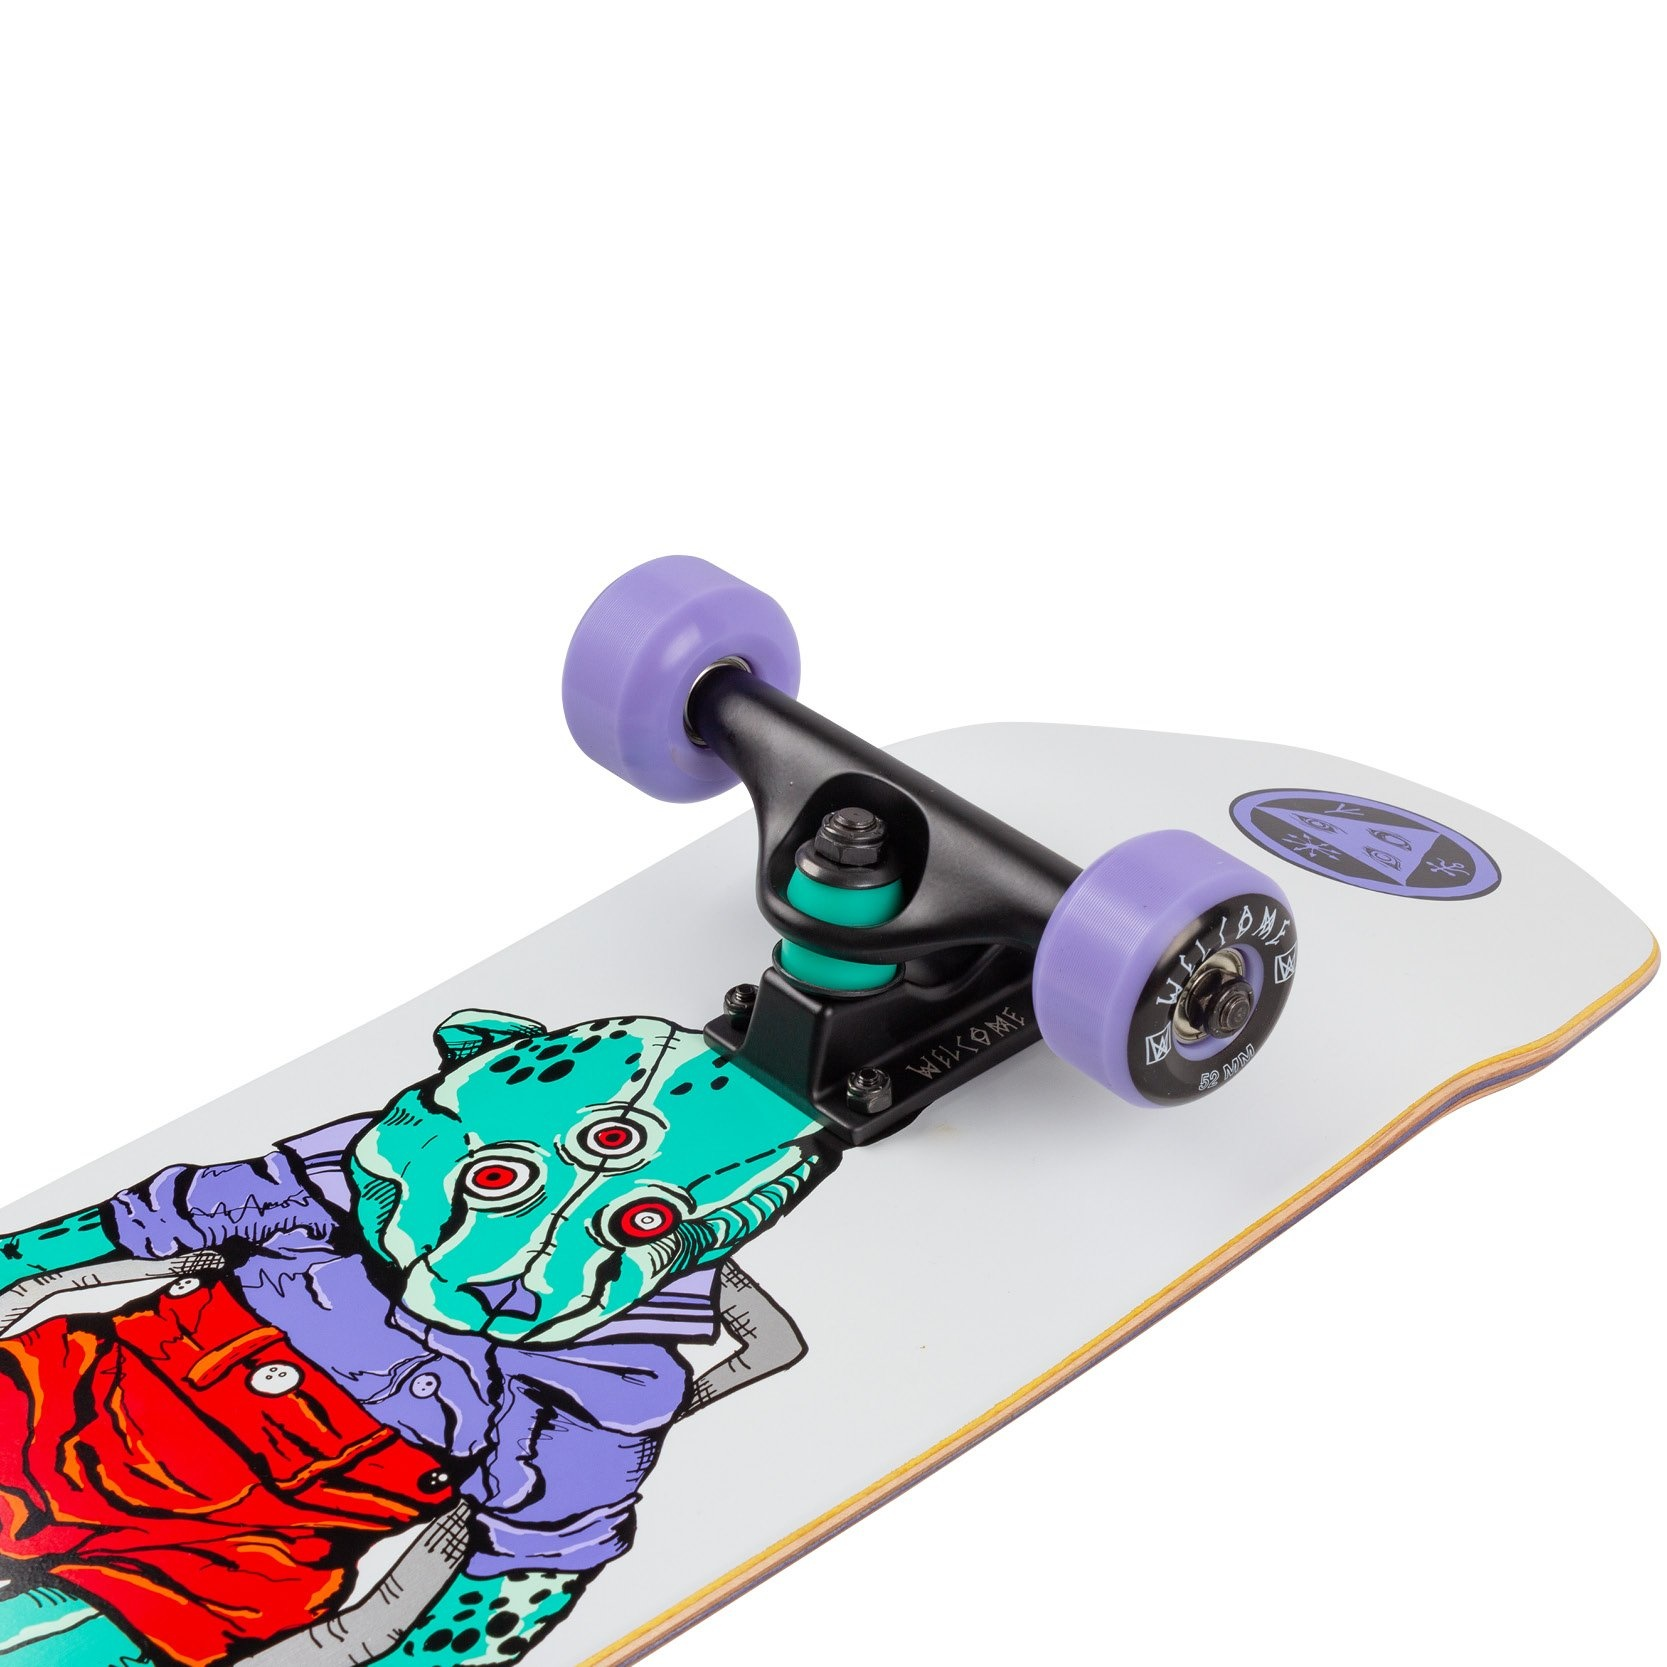 welcome skateboards teddy white 7.75 complete